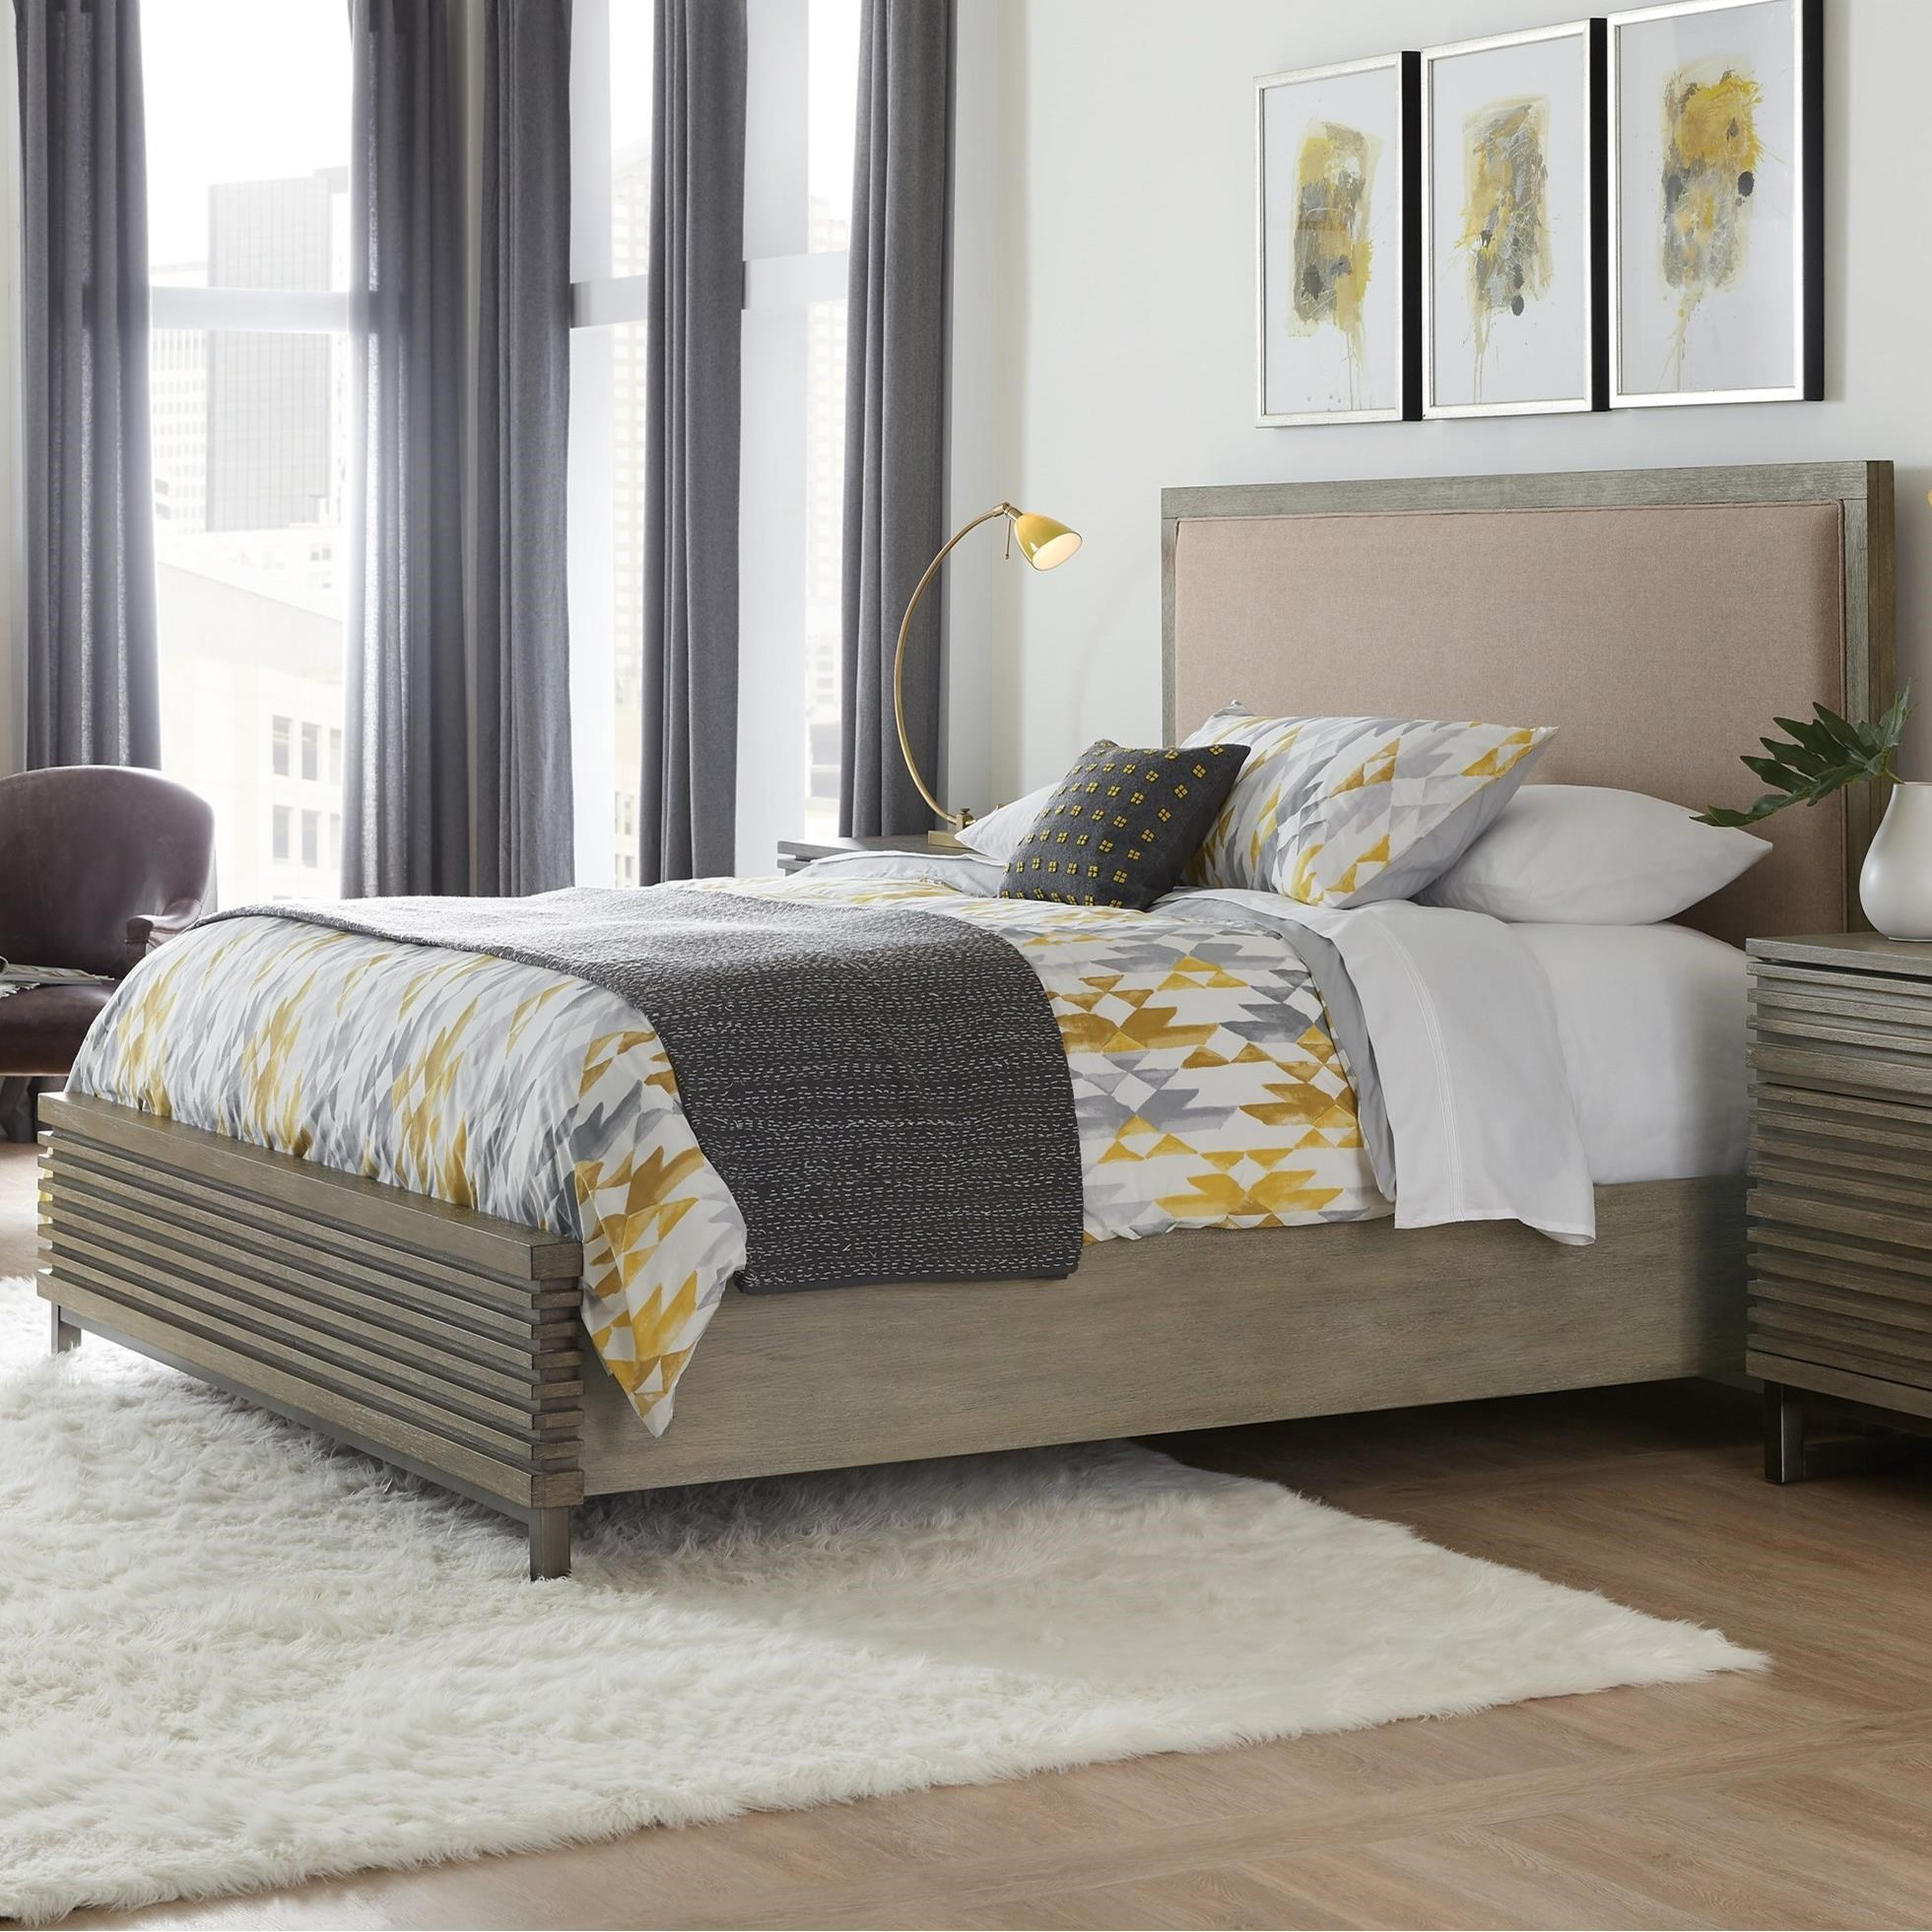 Annex Contemporary King Platform Upholstered Panel Bed